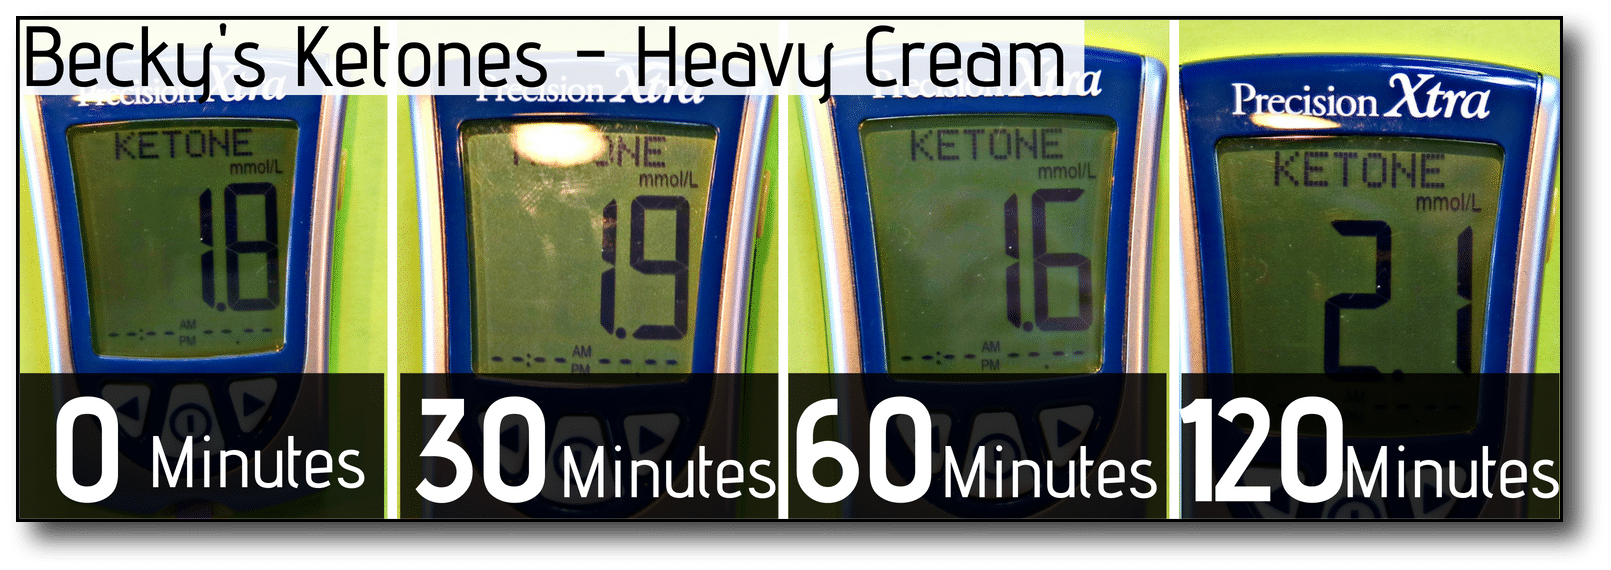 coffee and intermittent fasting- becky ketone heavy cream